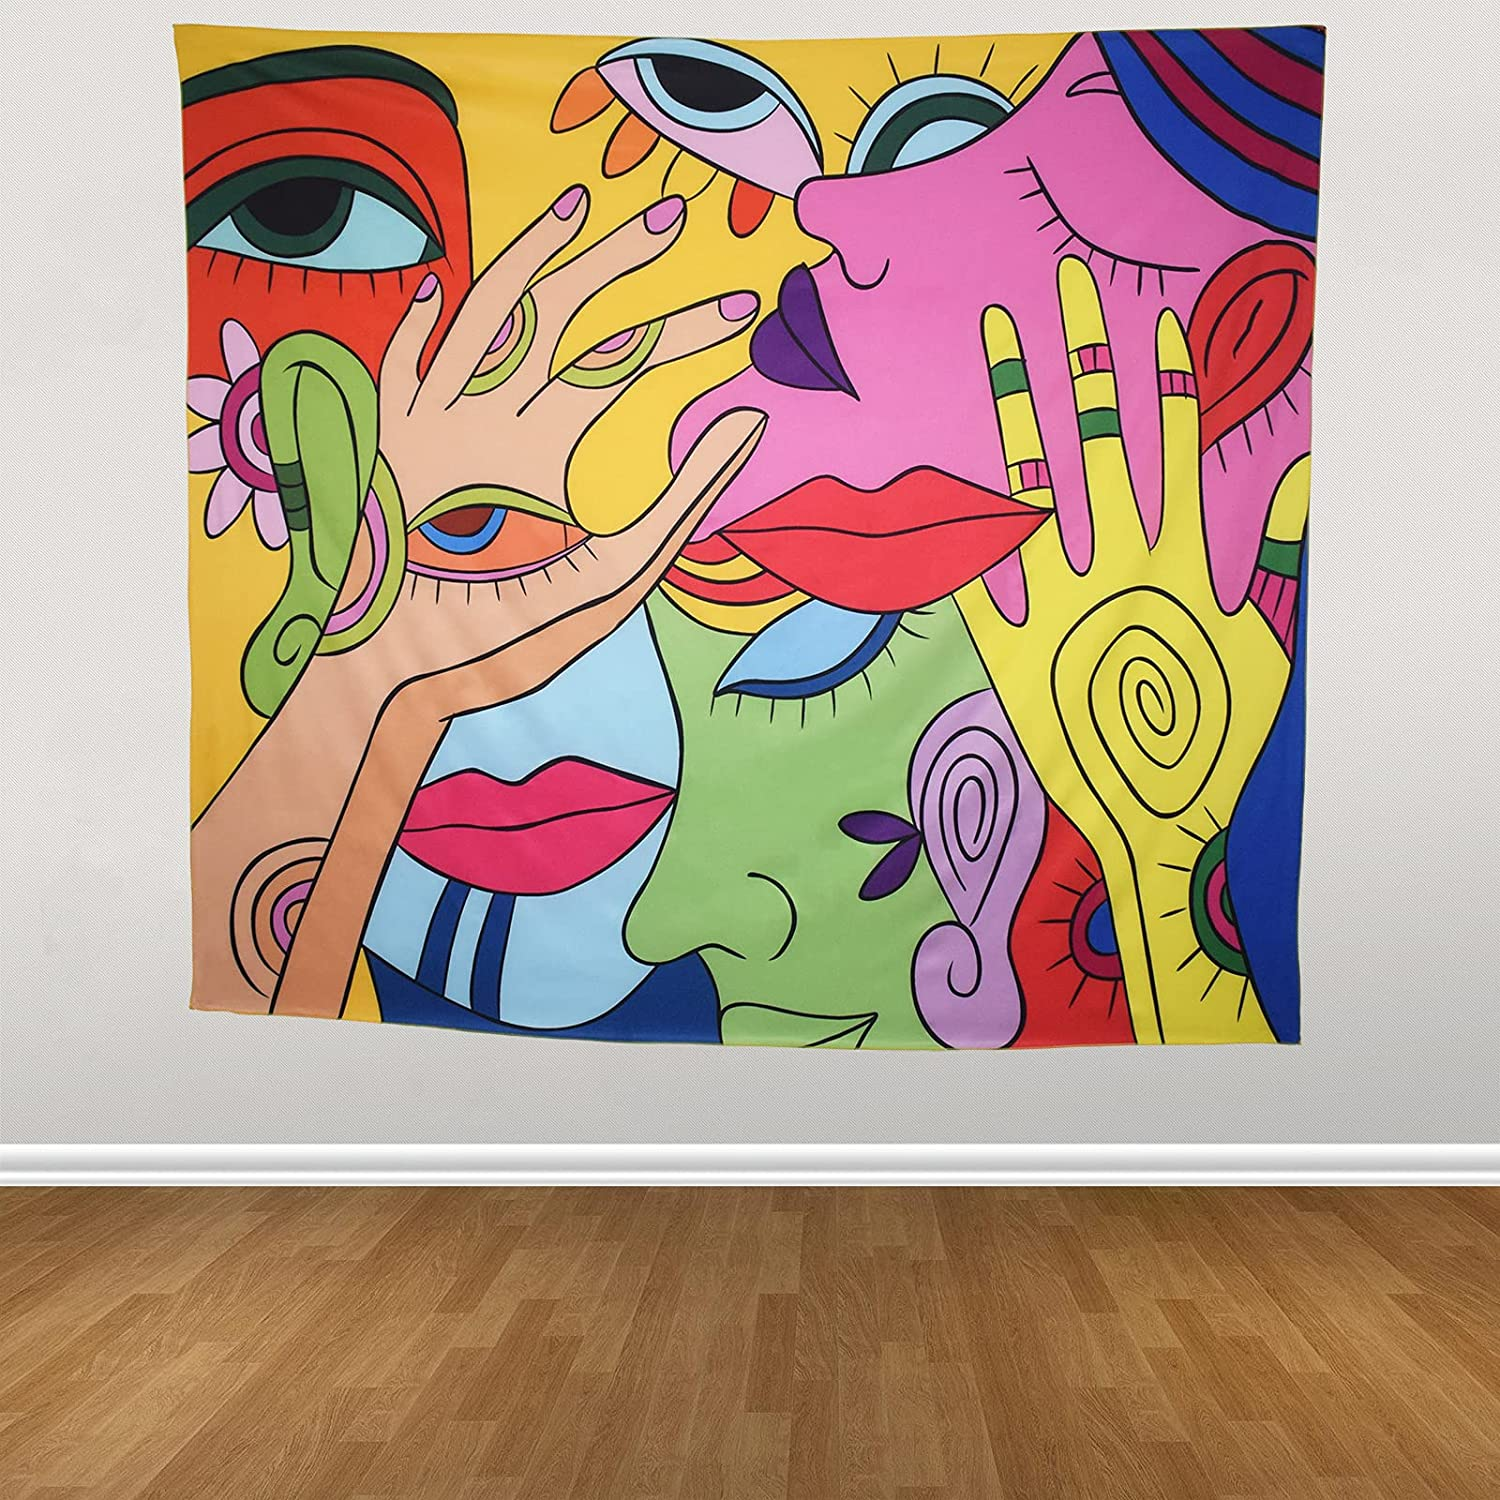 Trippy Wall Tapestry for Bedroom Aesthetic Hippie Room Decor Girl Wall Hanging Fantasy Popular Art Tapestries for Room Room Dorm Home Decortion Colorful 51.2 X 59.1 inches